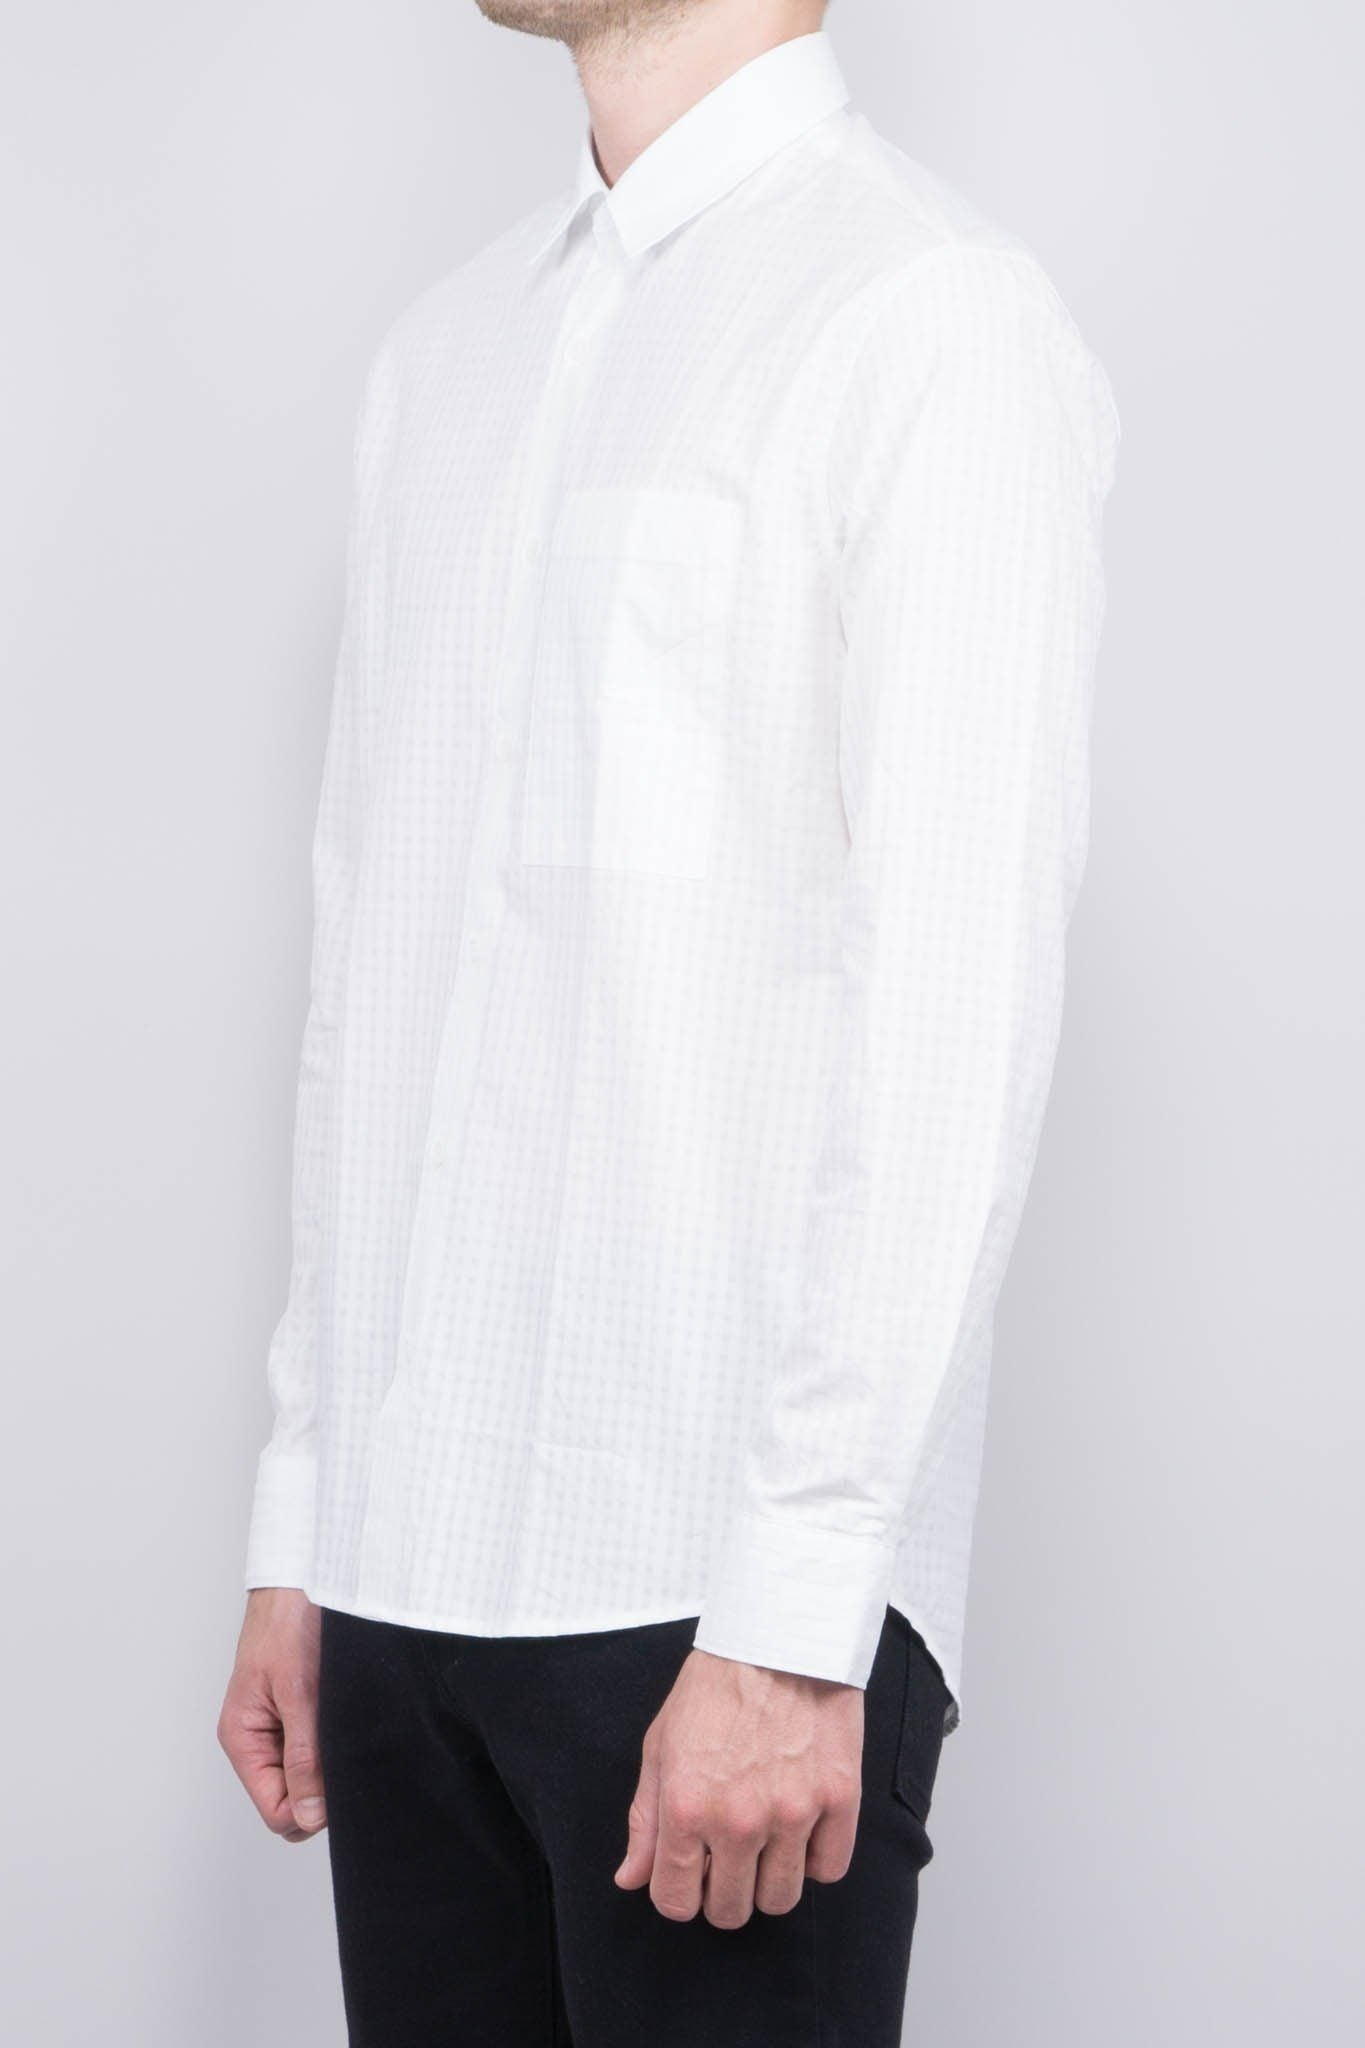 Coltesse Hydrus Shirt